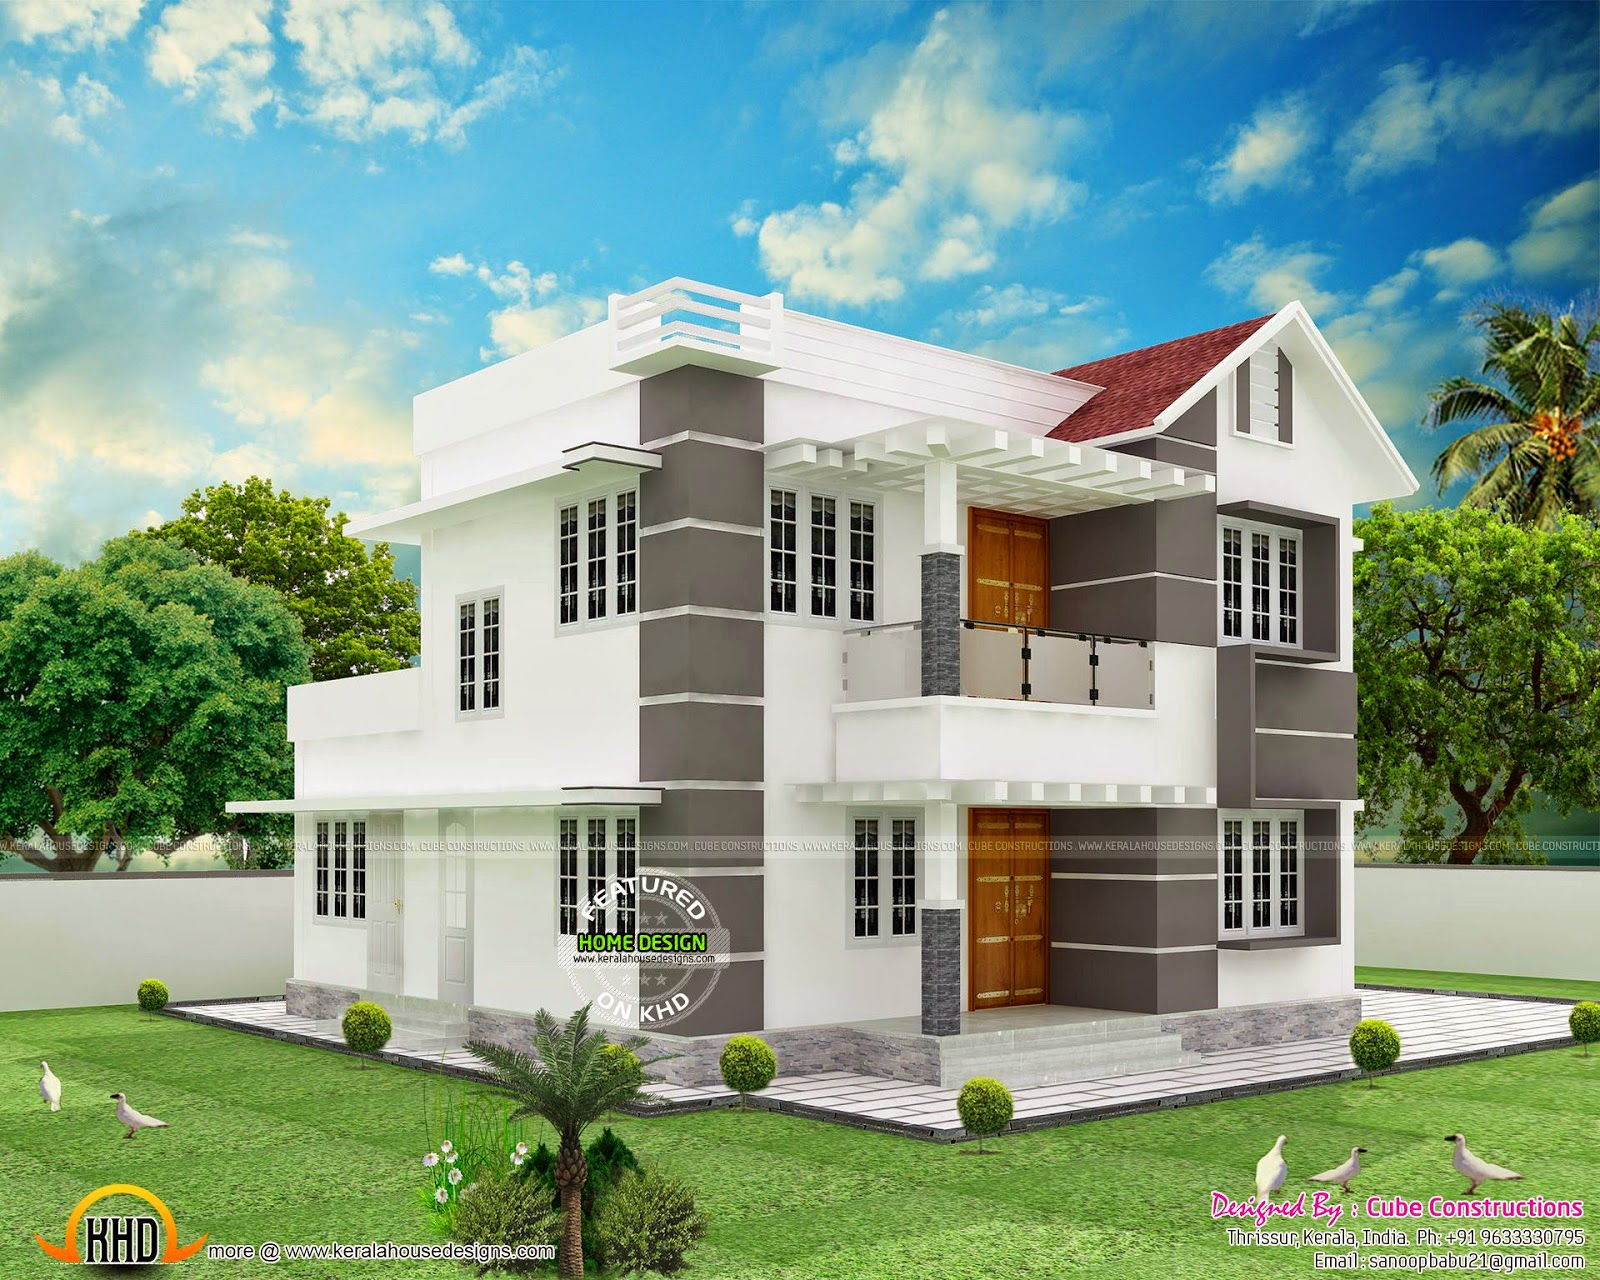 House Design By Cube Constructions Kerala Home Design